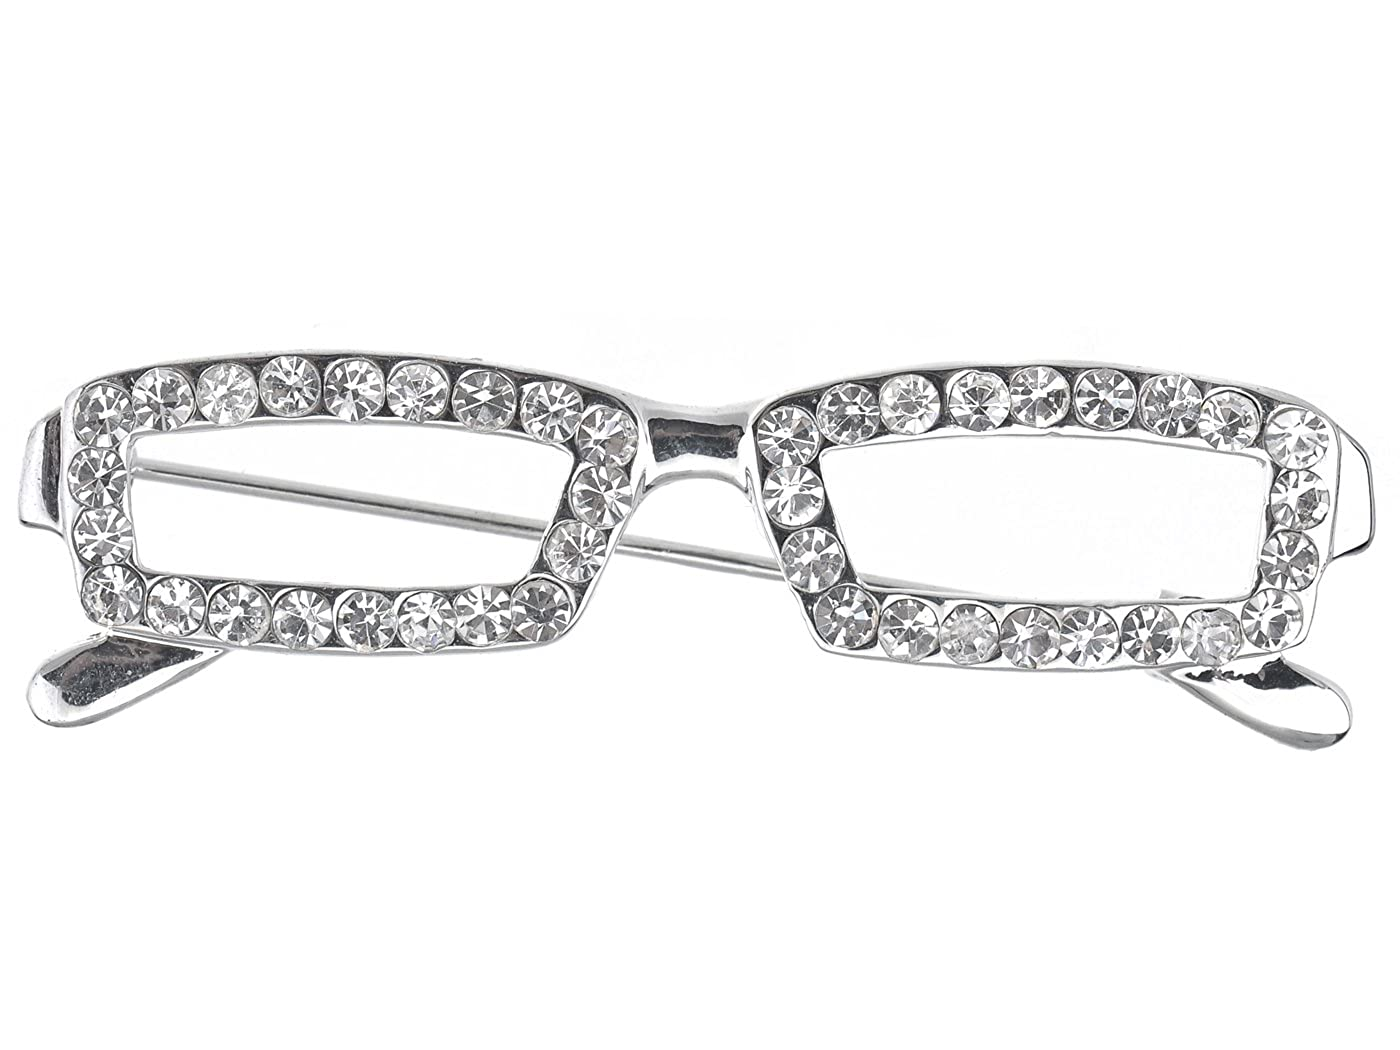 Alilang Silberton Clear Crystal Farbige Strass Rechteck Nerdy Glasses Brosche